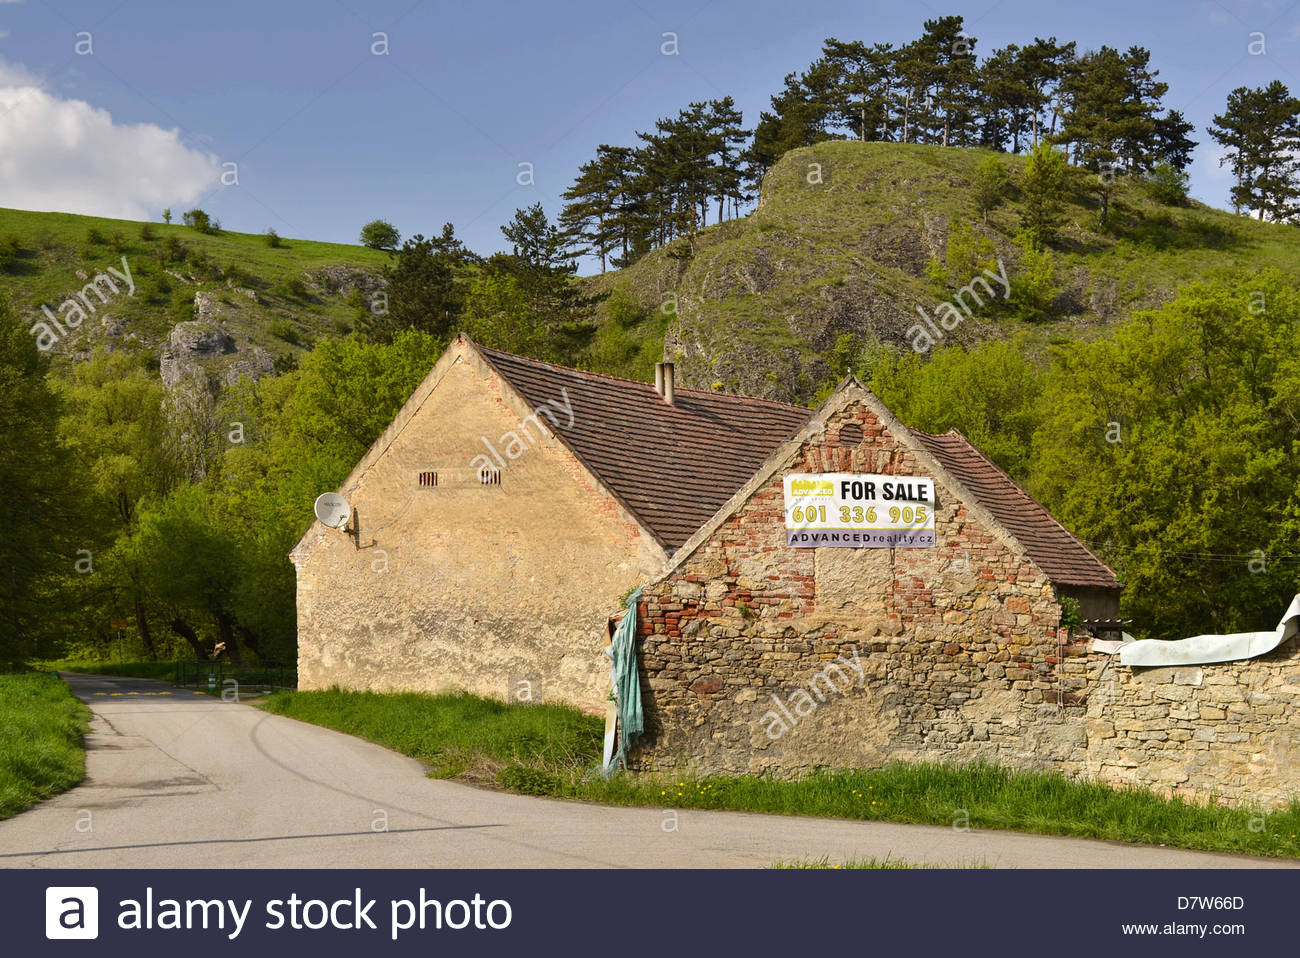 Derelict house for sale in rural suburb of Prague Czech Republic Europe. - Stock Image